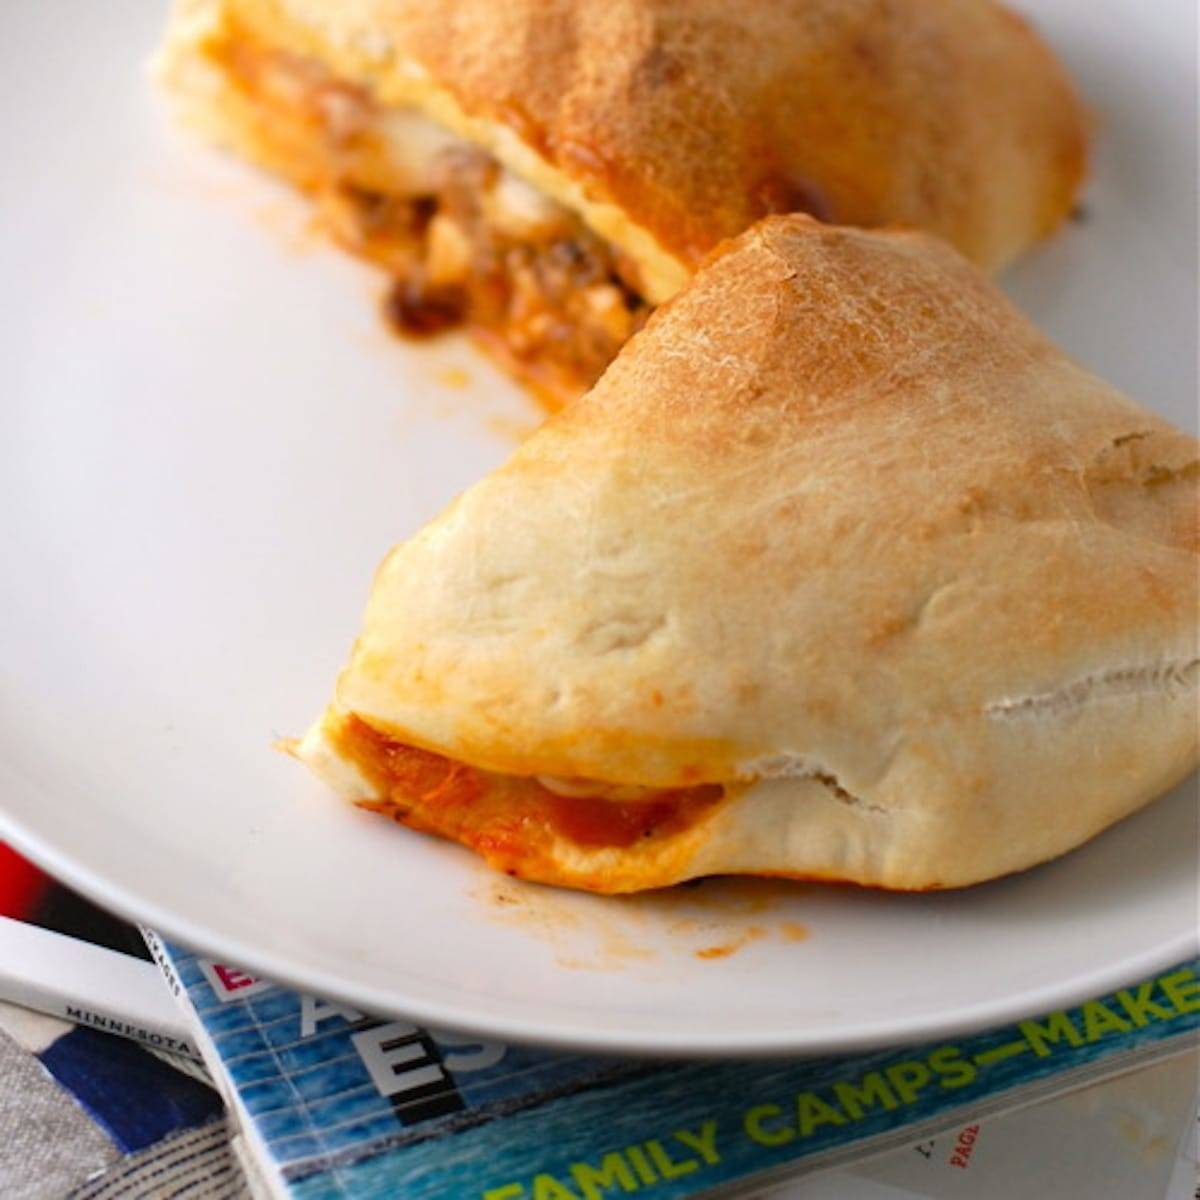 Sausage and mozzarella calzones on a white plate.